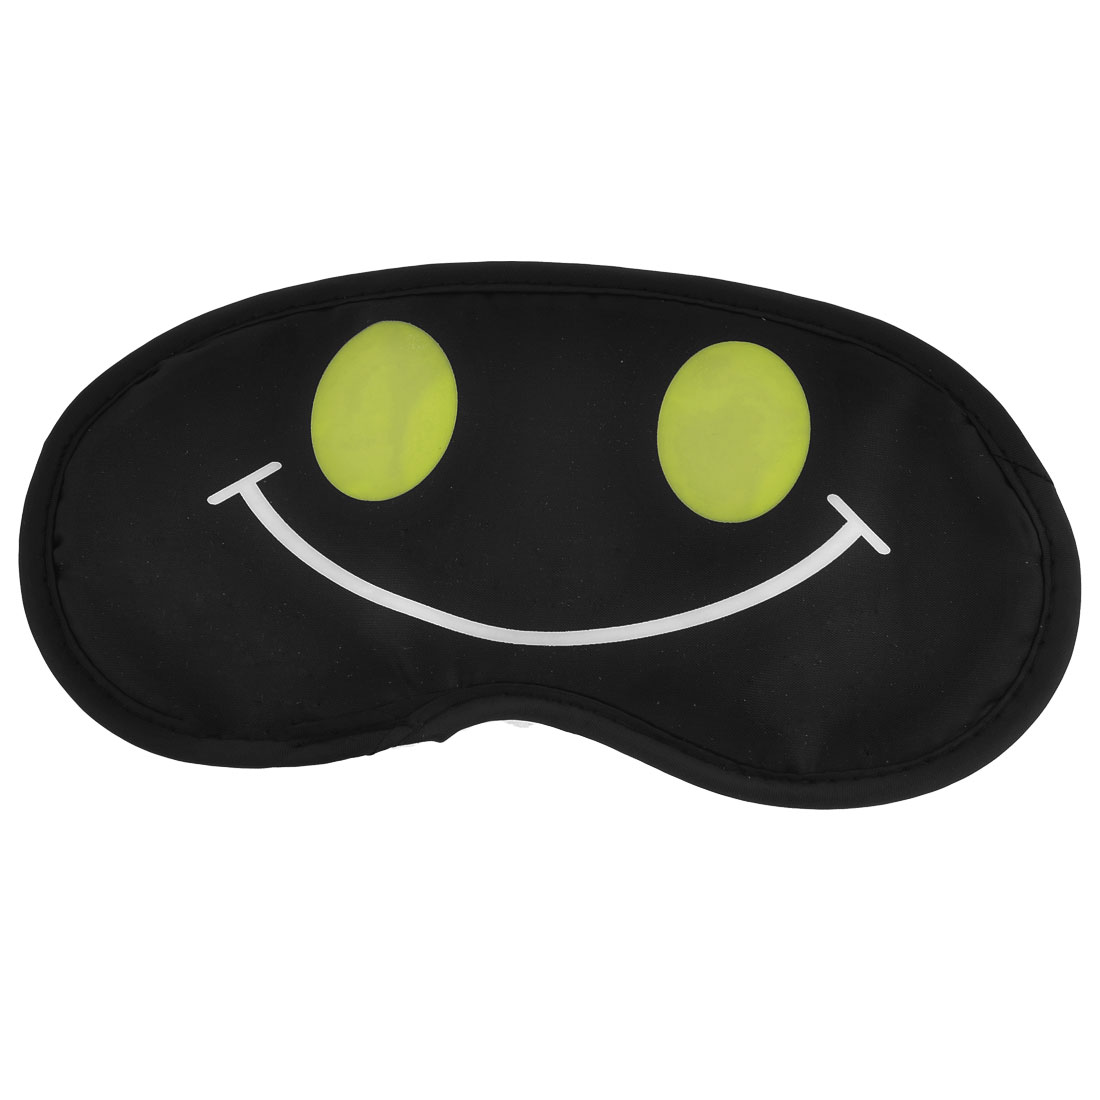 Travel Sleep Blindfold Smile Face Printed Eyepatch Eye Mask Black